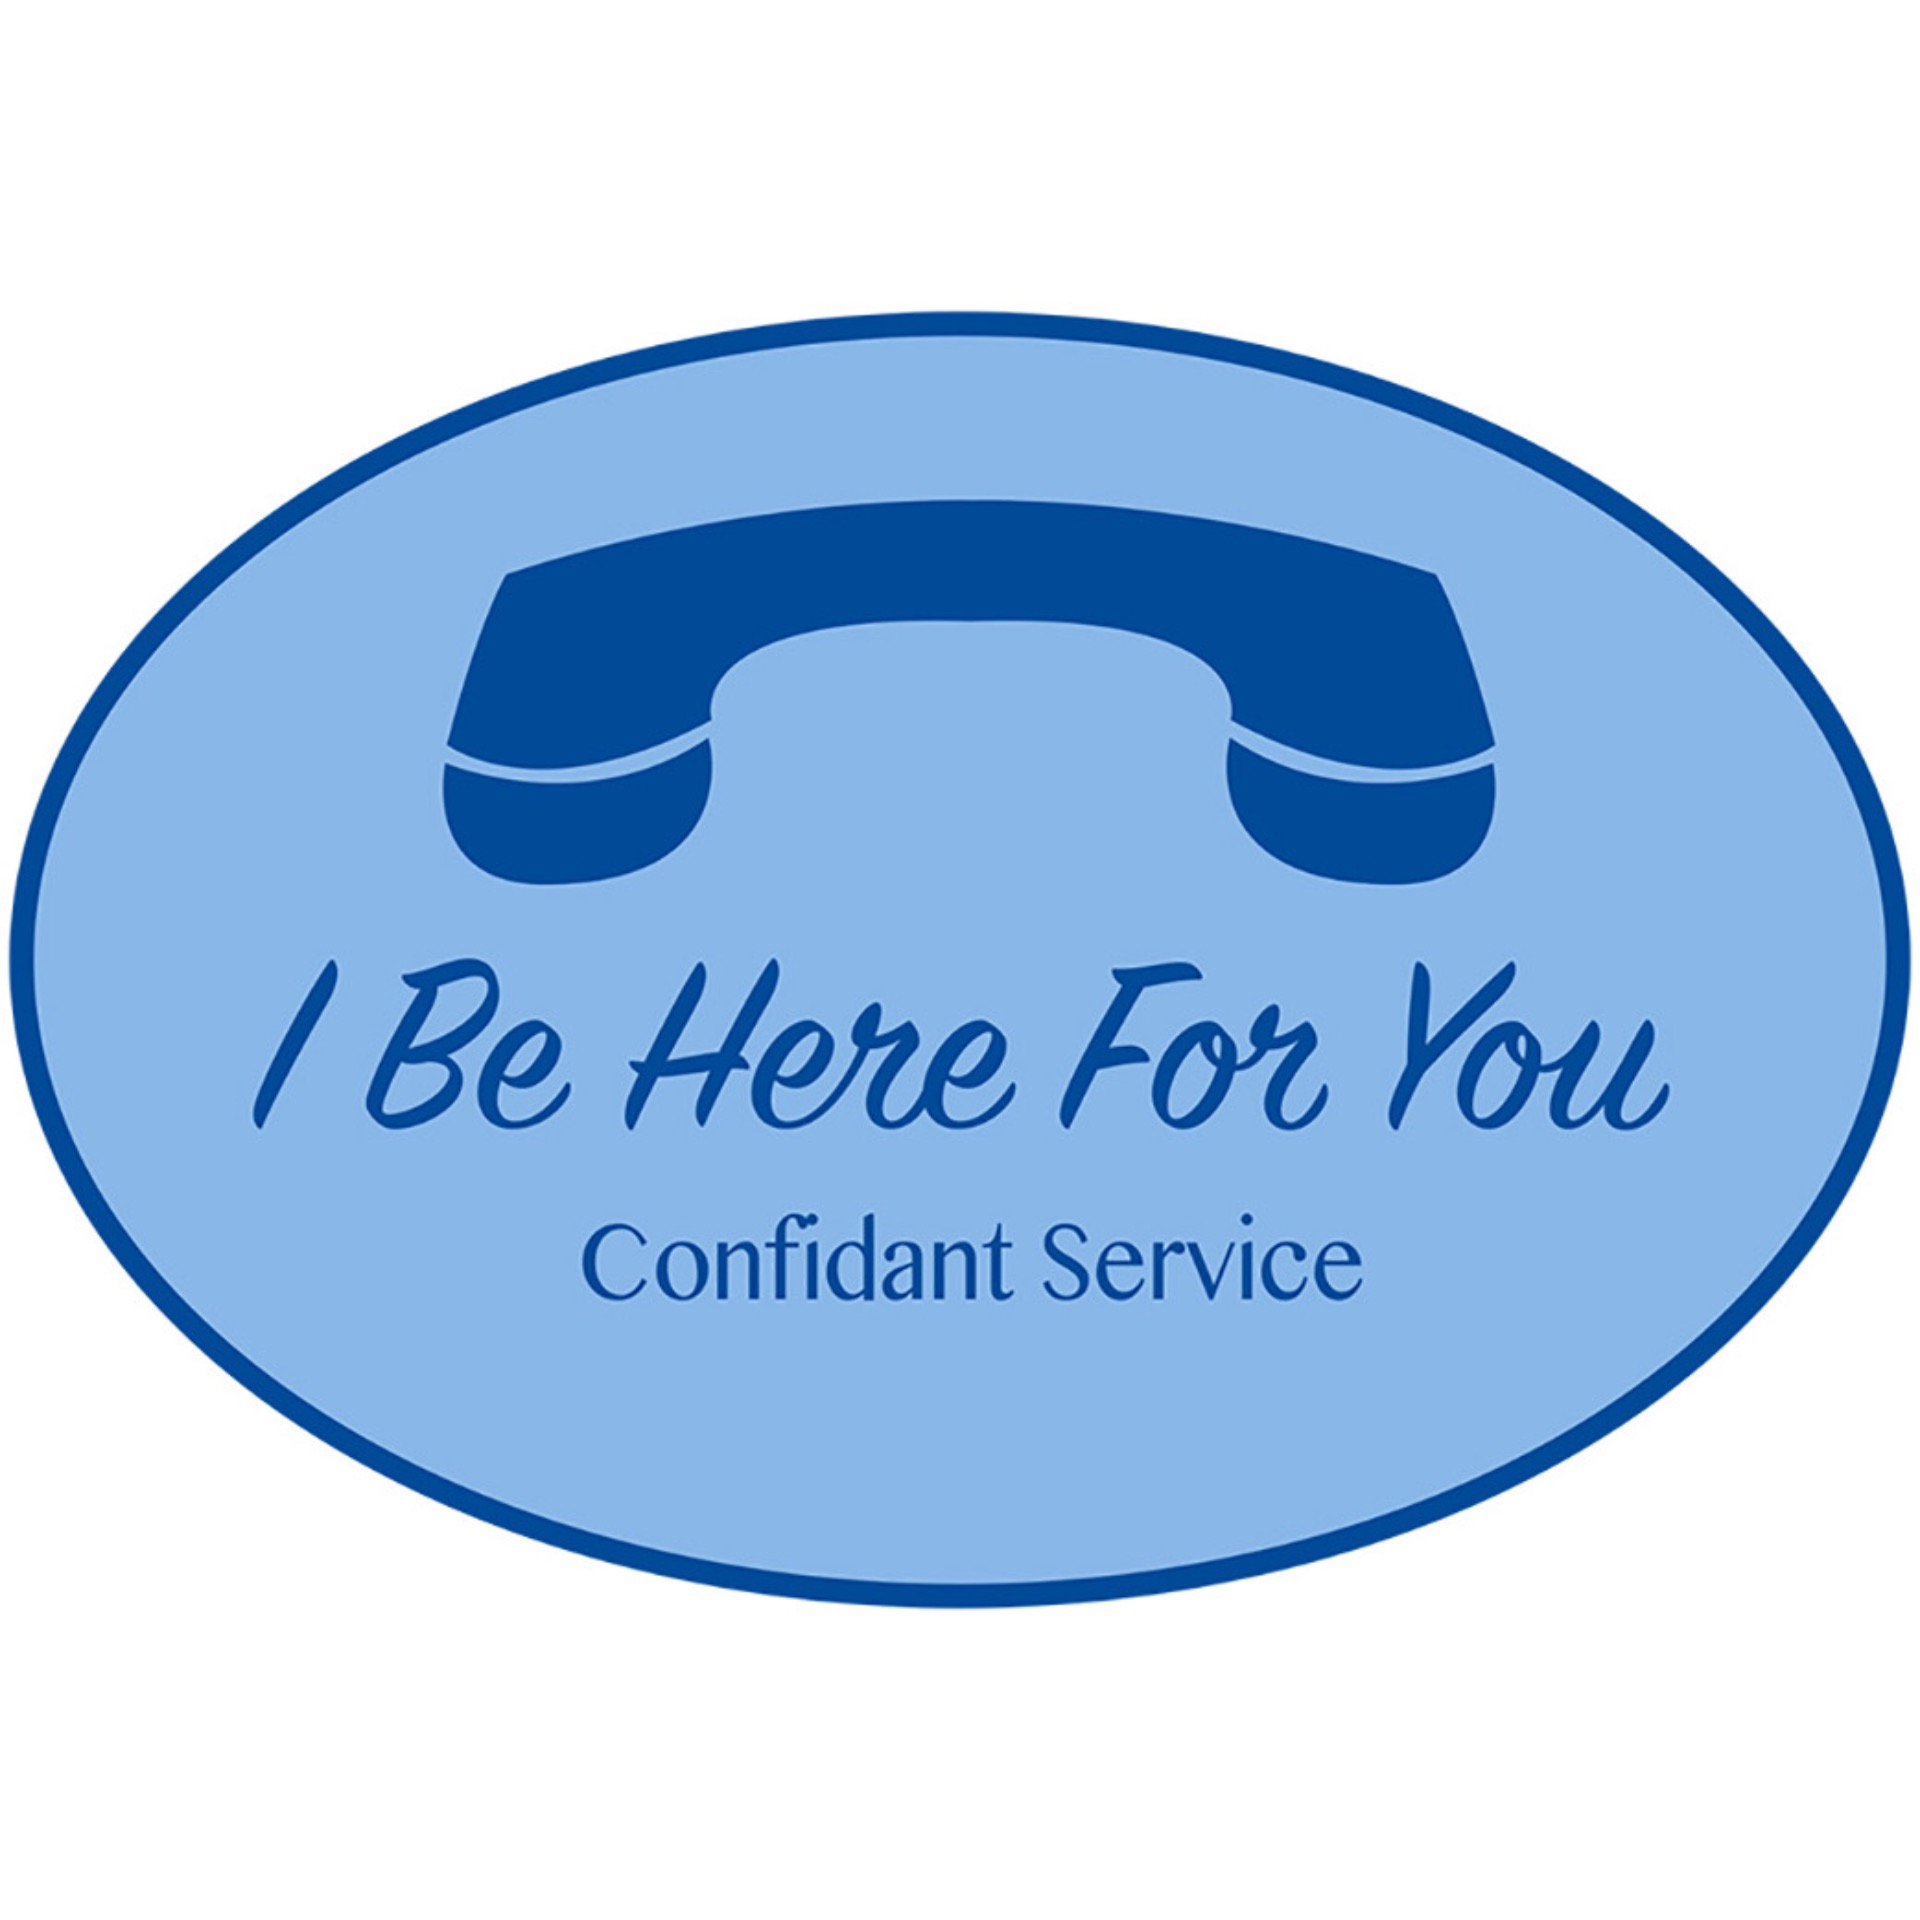 I Be Here For You-Confidant Service